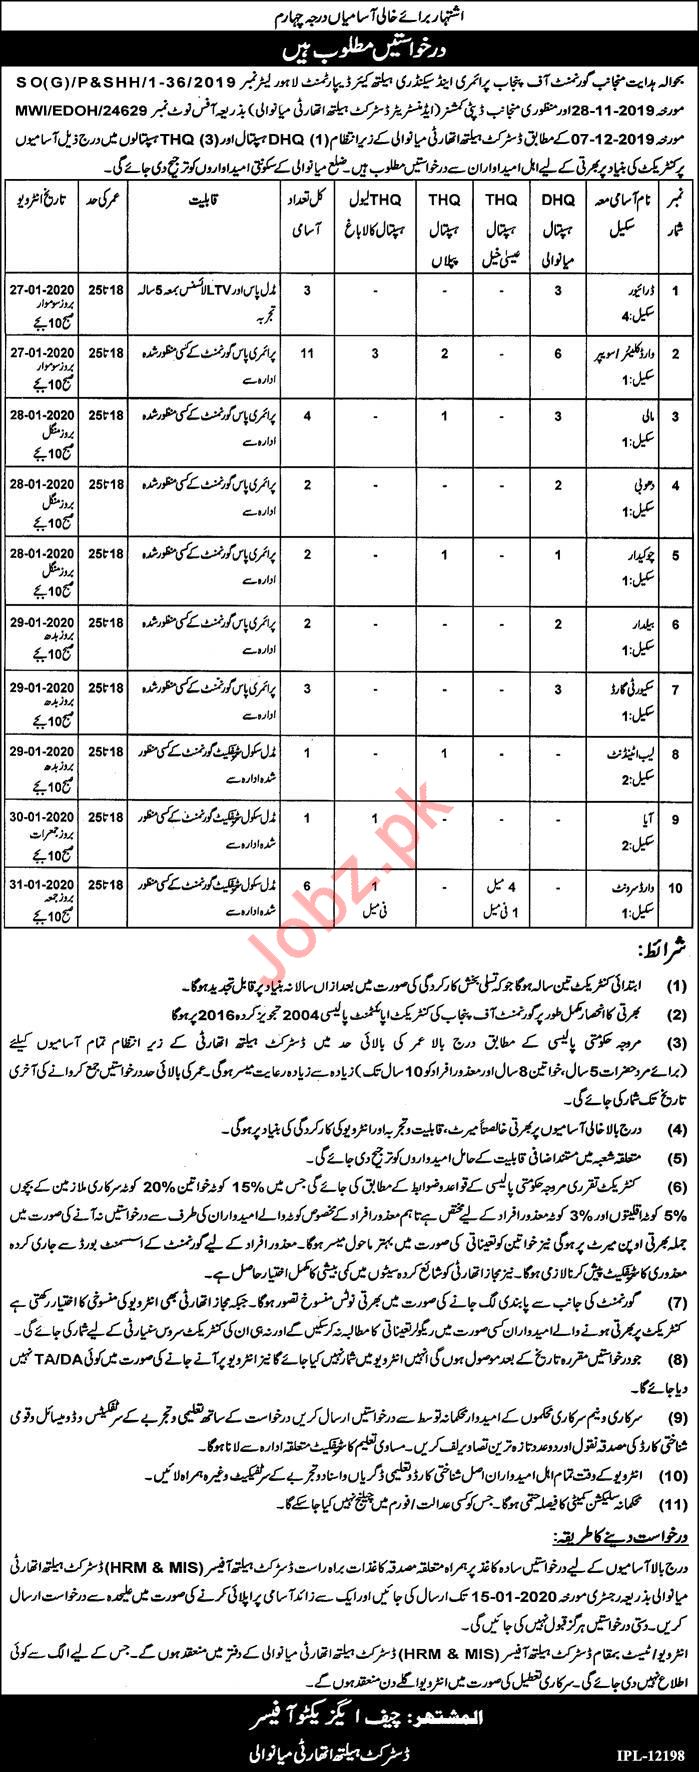 Primary & Secondary Healthcare Department Jobs 2020